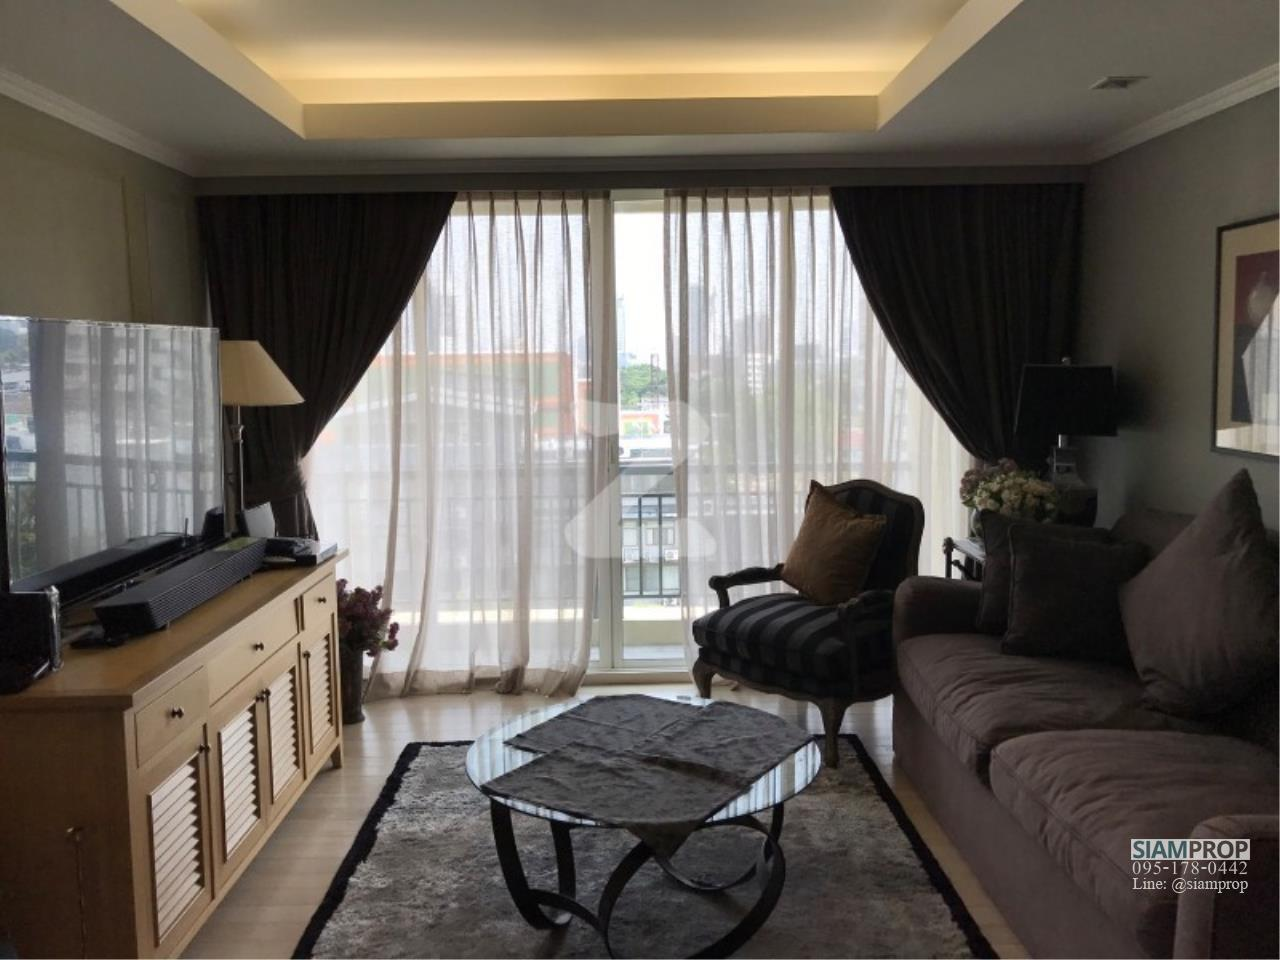 Siam Prop Agency's Penthouse 3 Bedrooms at Preen By Sansiri Condo for rent at Ruamrudee, Phloenchit Rd - Witthayu Rd. 1